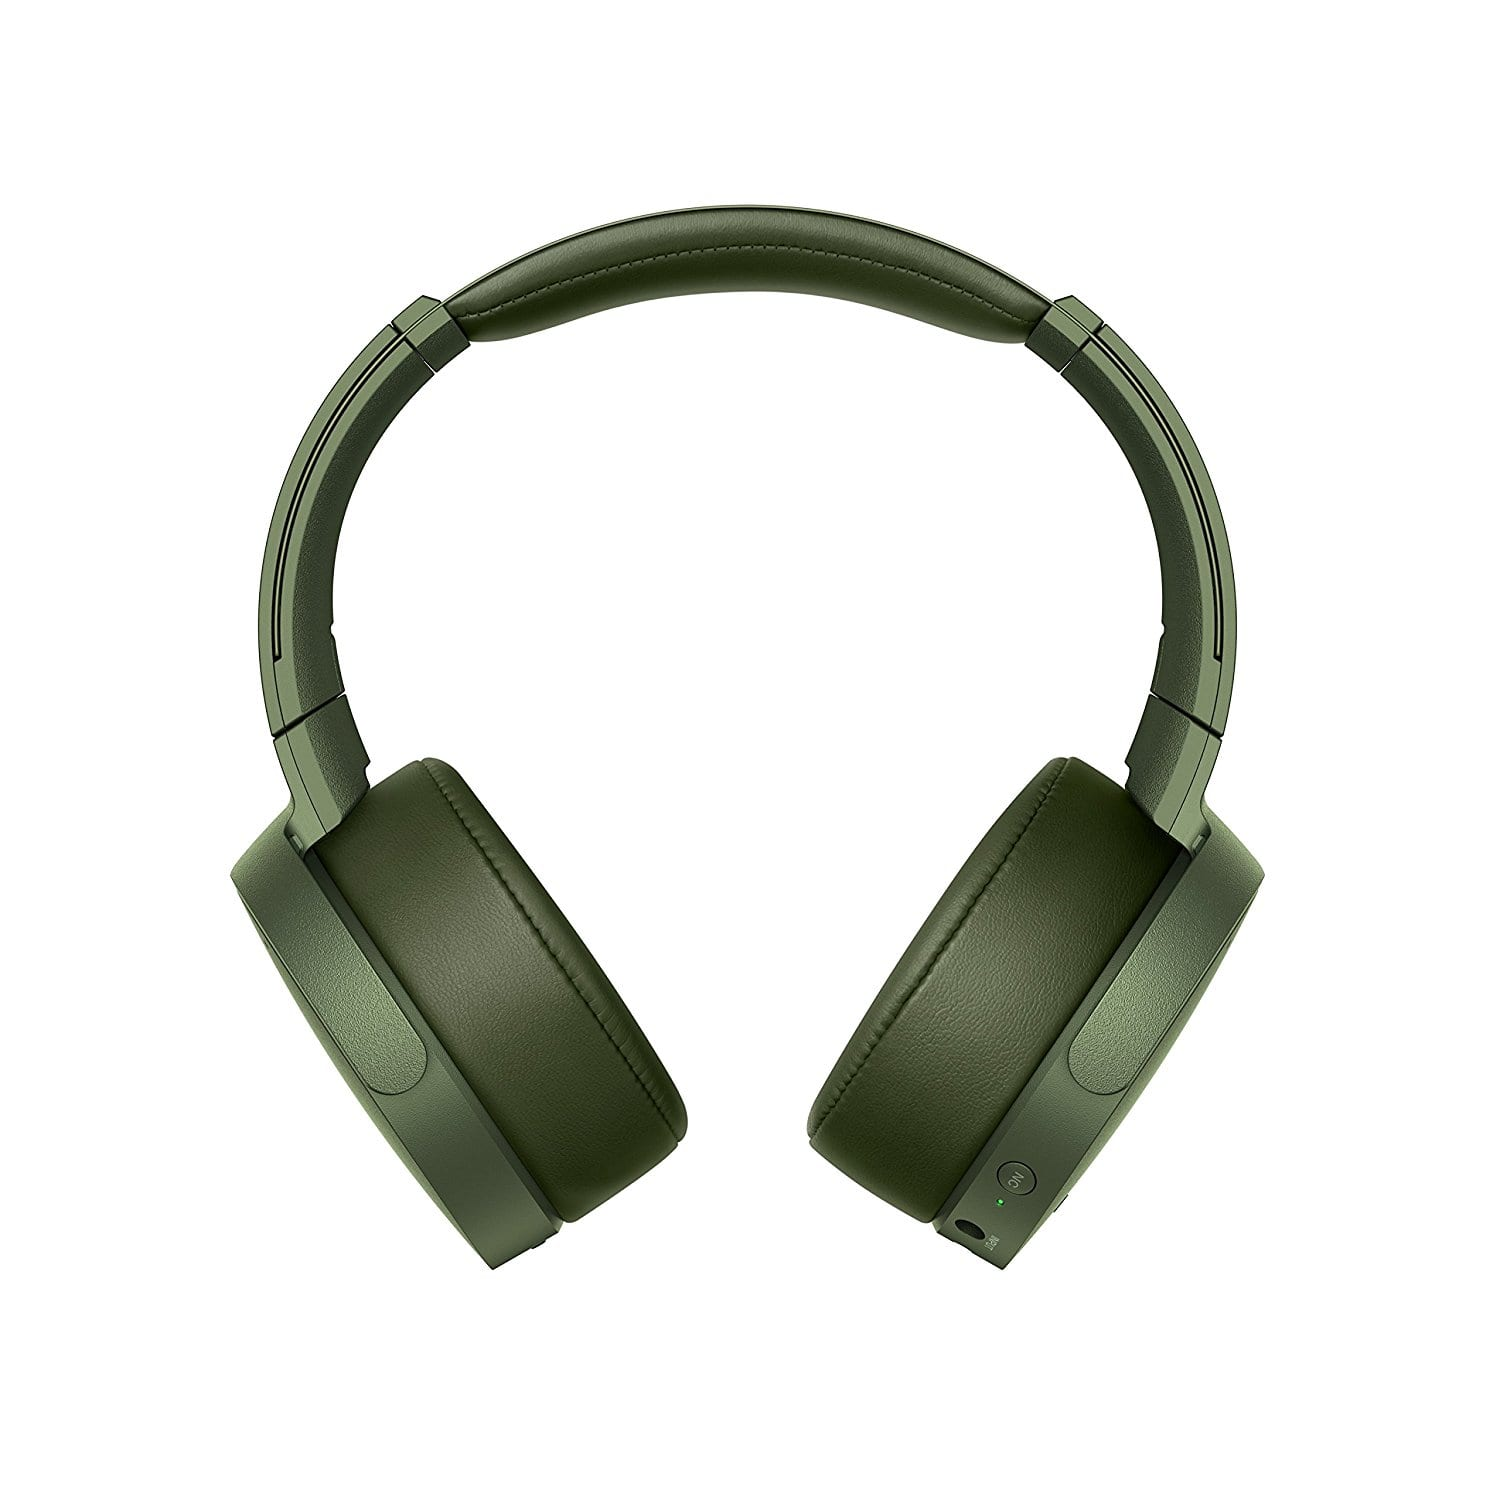 Sony XB950N1 Extra Bass Wireless Noise Canceling Headphones, Green or Black @ Amazon $123+PRIME FS